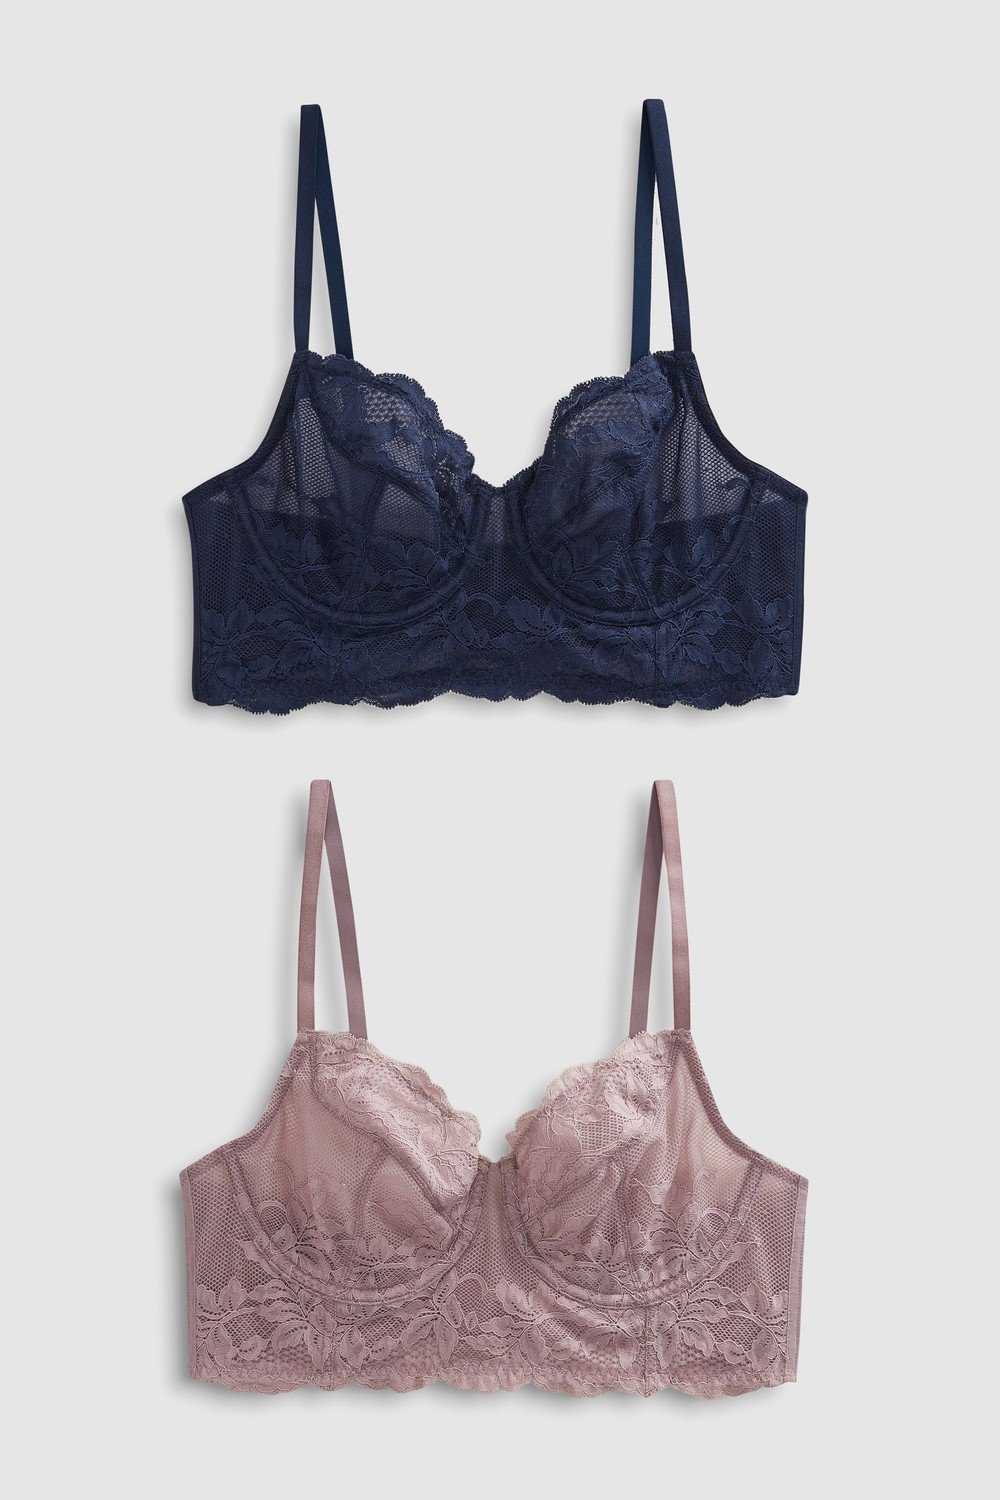 c22312bb16852 Next Georgie Non Padded Lace Full Cup Bras Two Pack Online